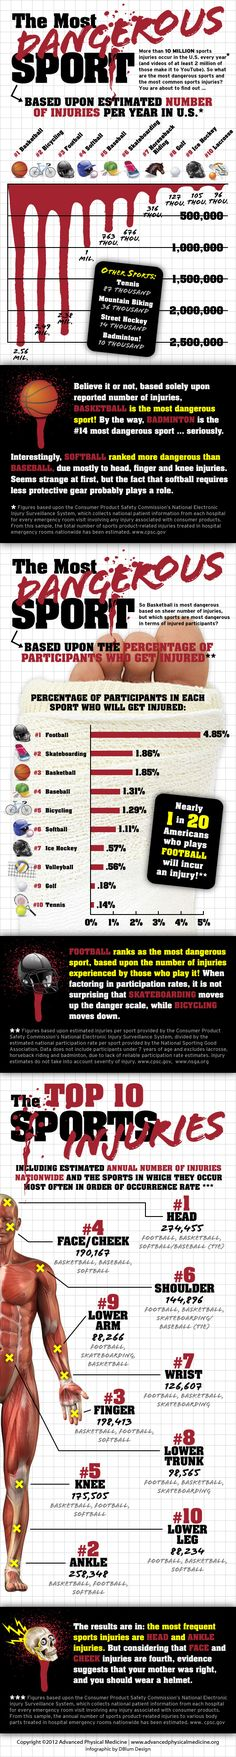 I don't see the #1sport on the planet, soccer(real football) on this infograffic.